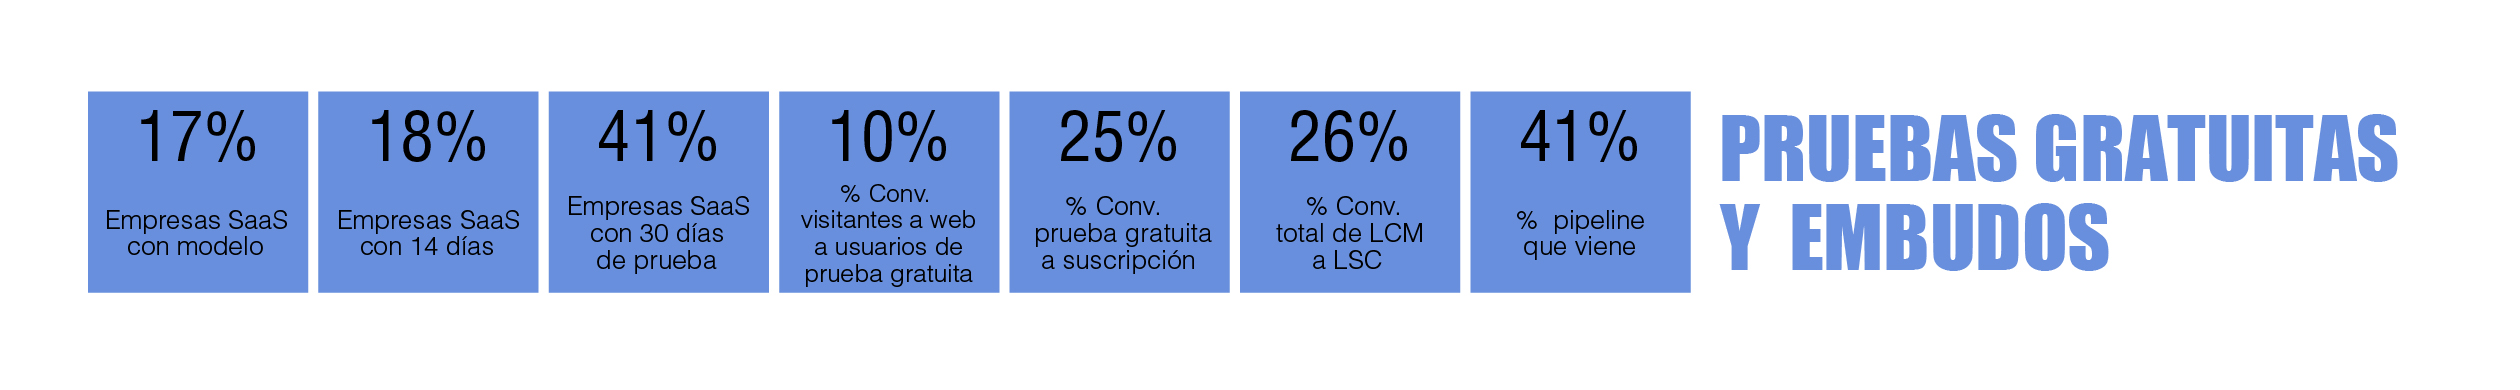 tabla periódica de marketing digital B2B: